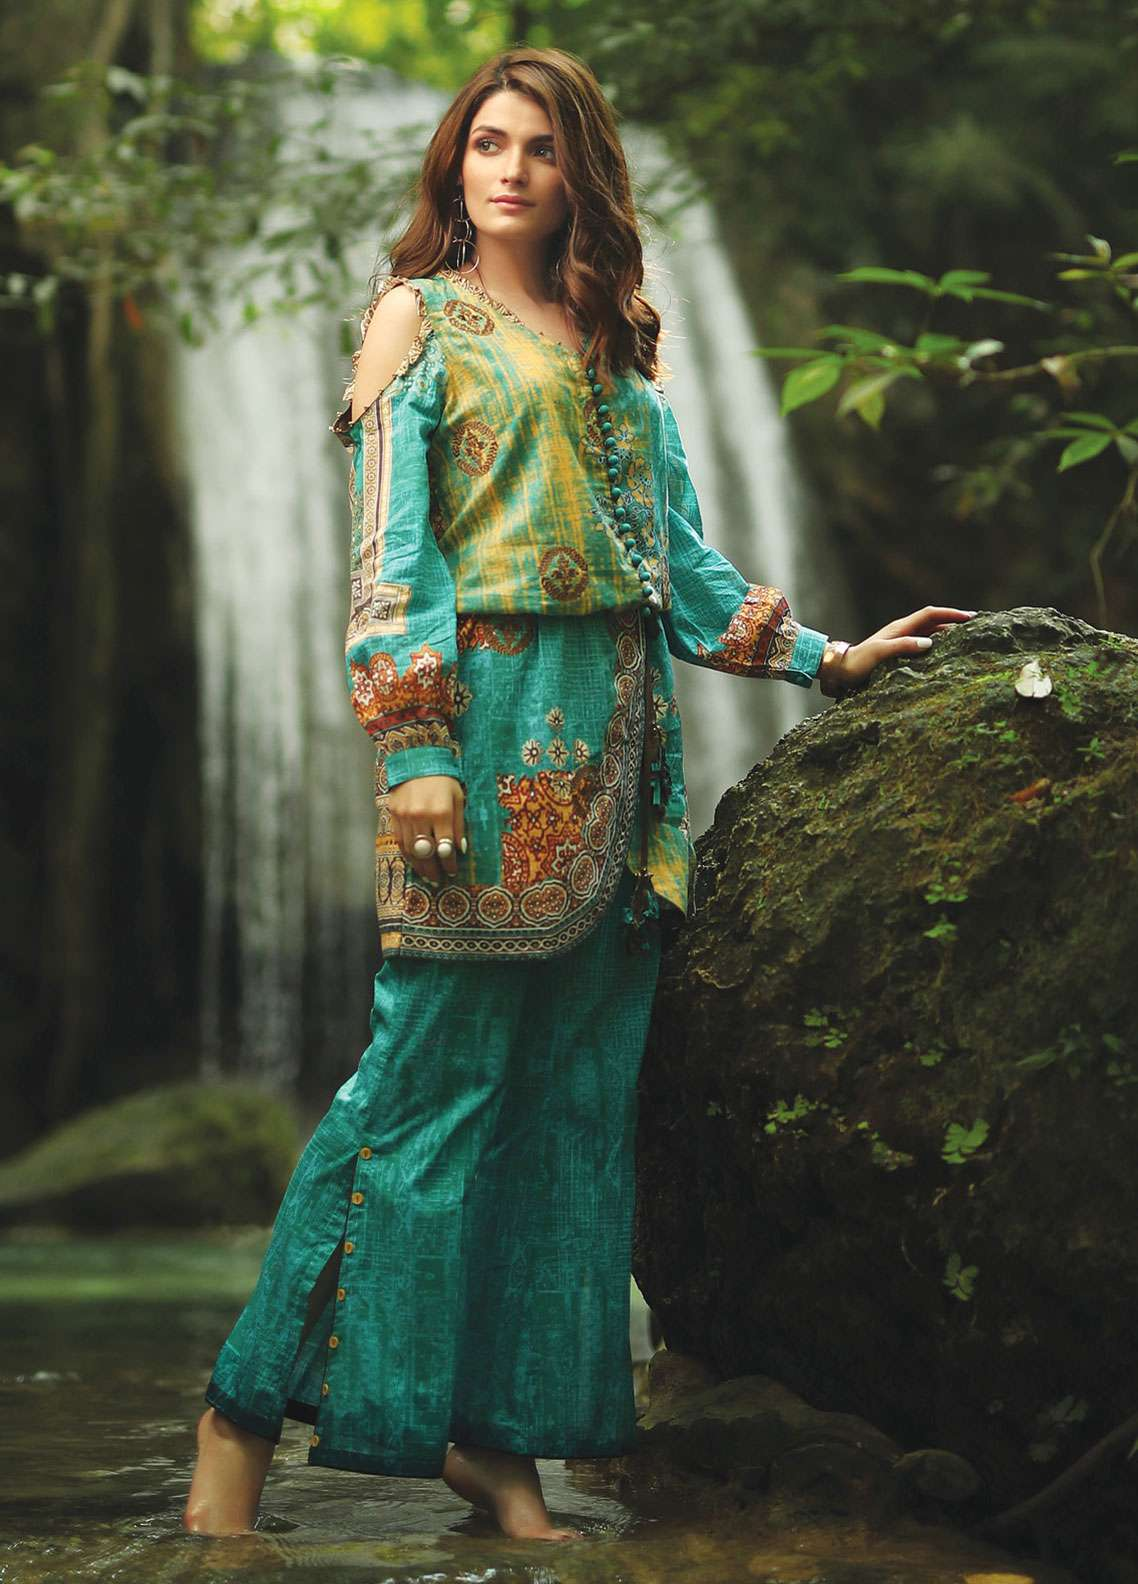 Edenrobe Embroidered Lawn Unstitched 2 Piece Suit 019509 - Spring / Summer Collection